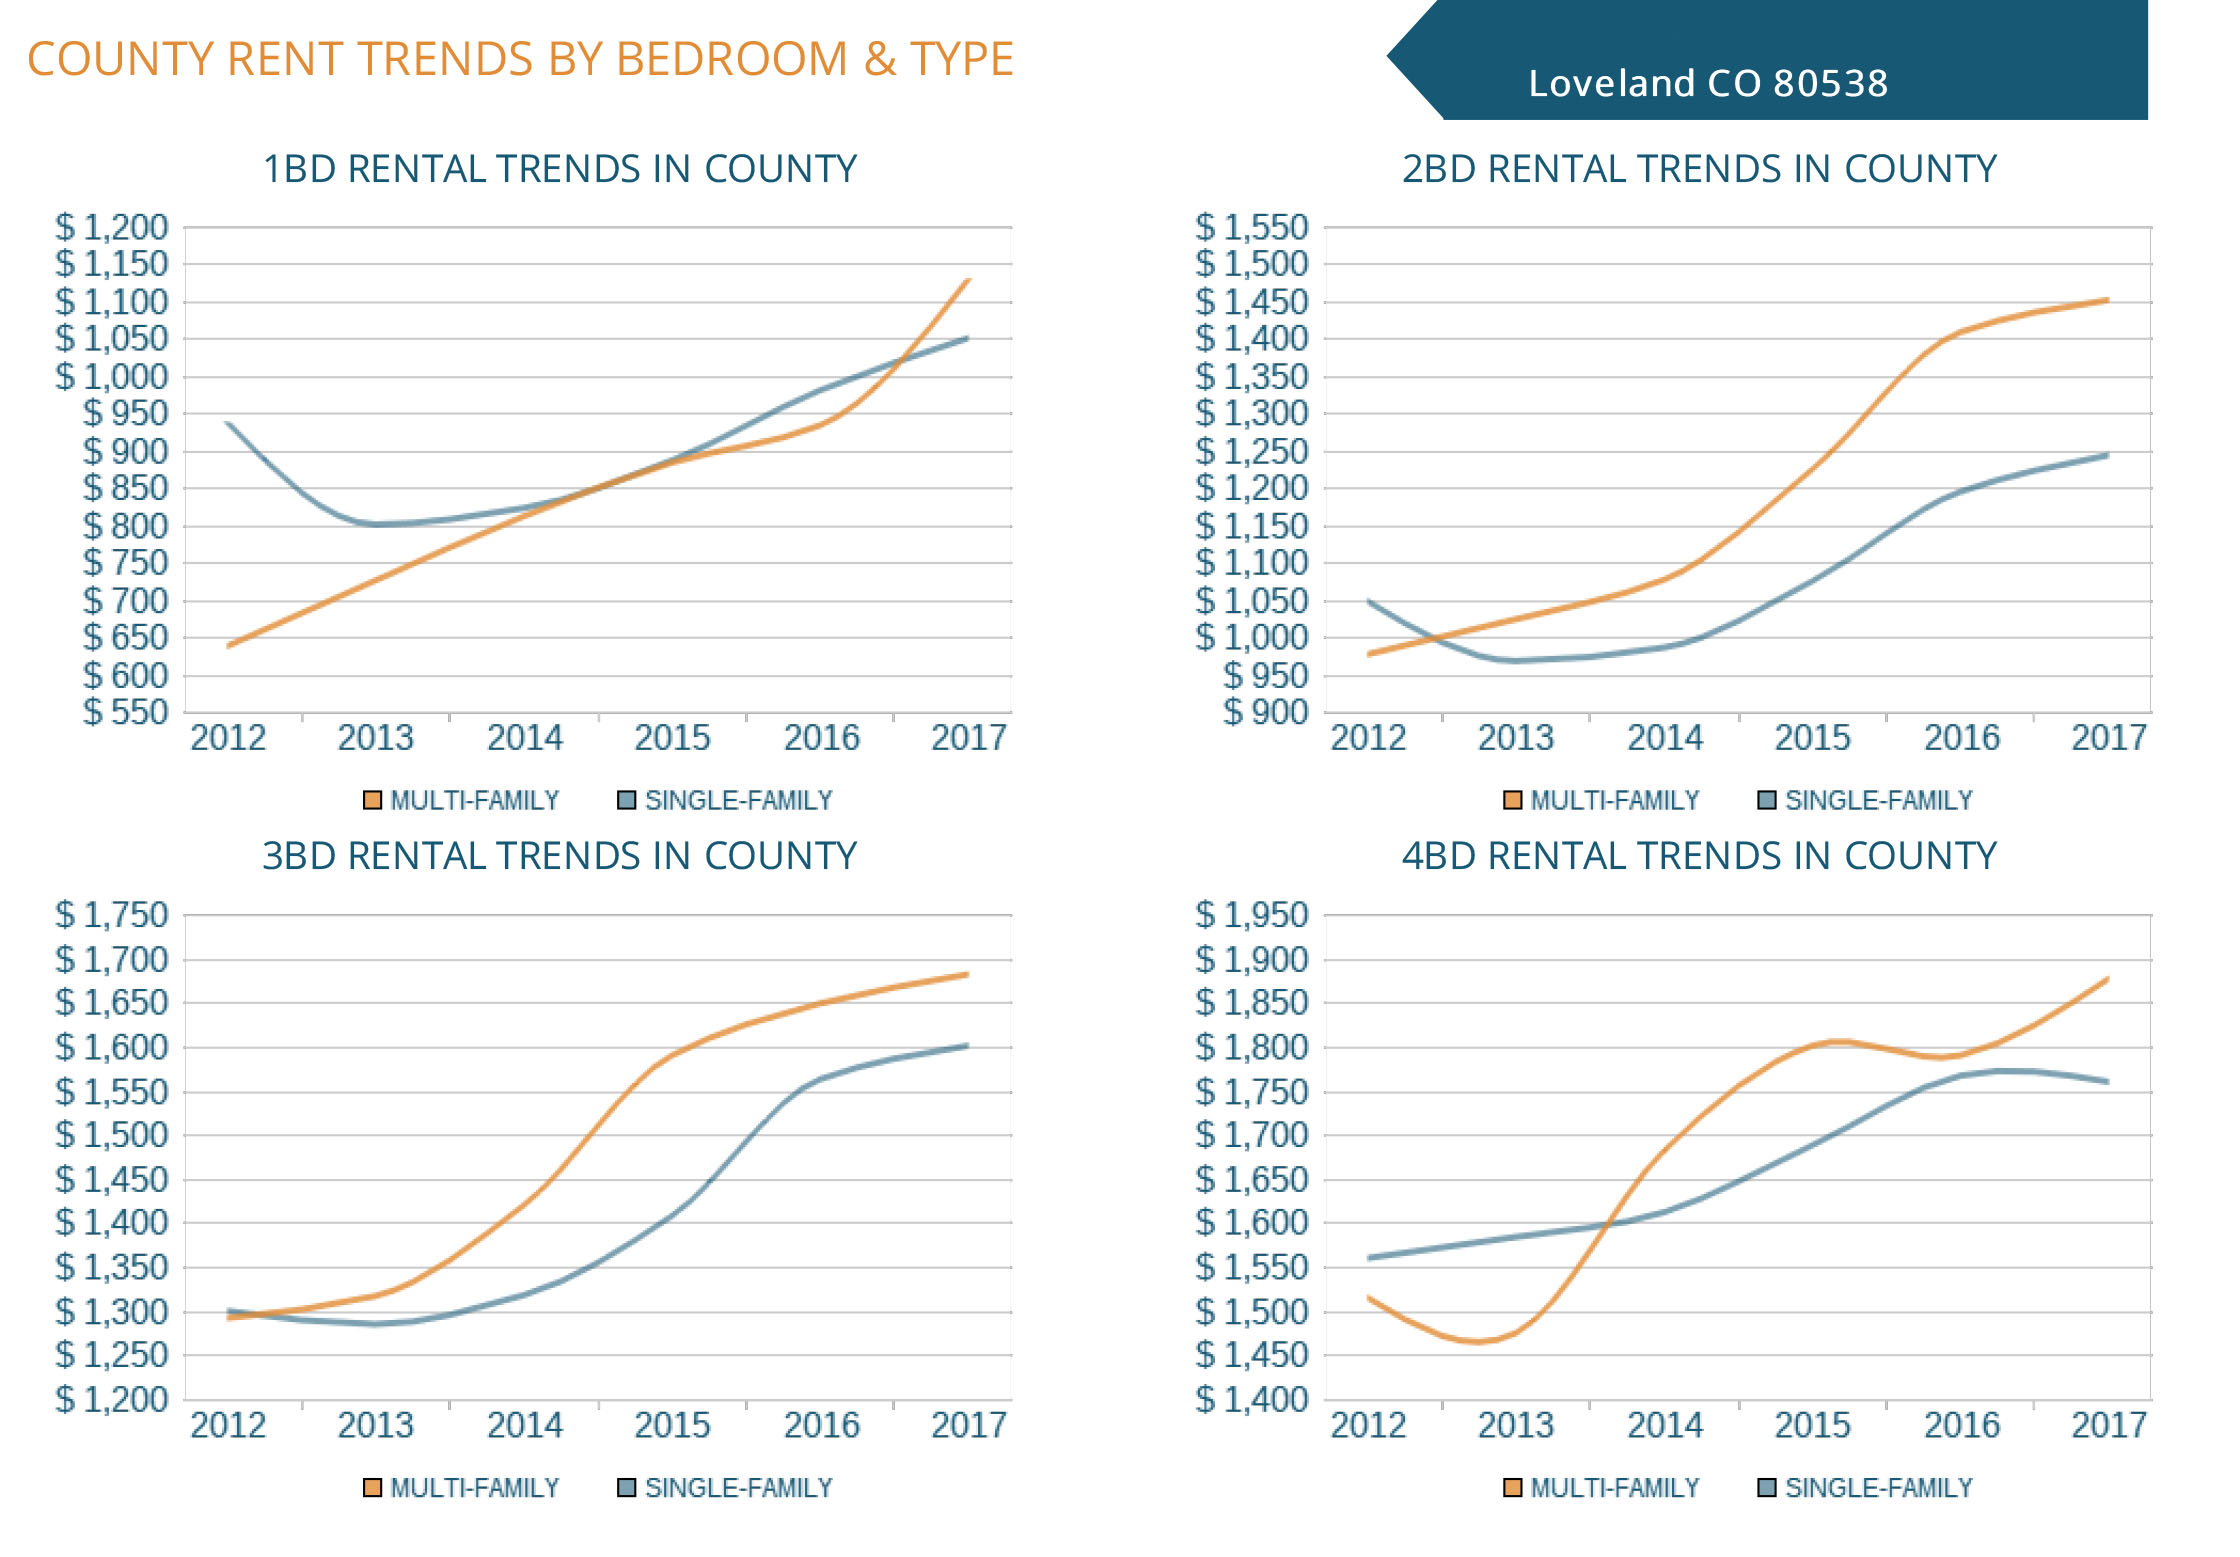 Loveland County Rent Trends By Bedroom